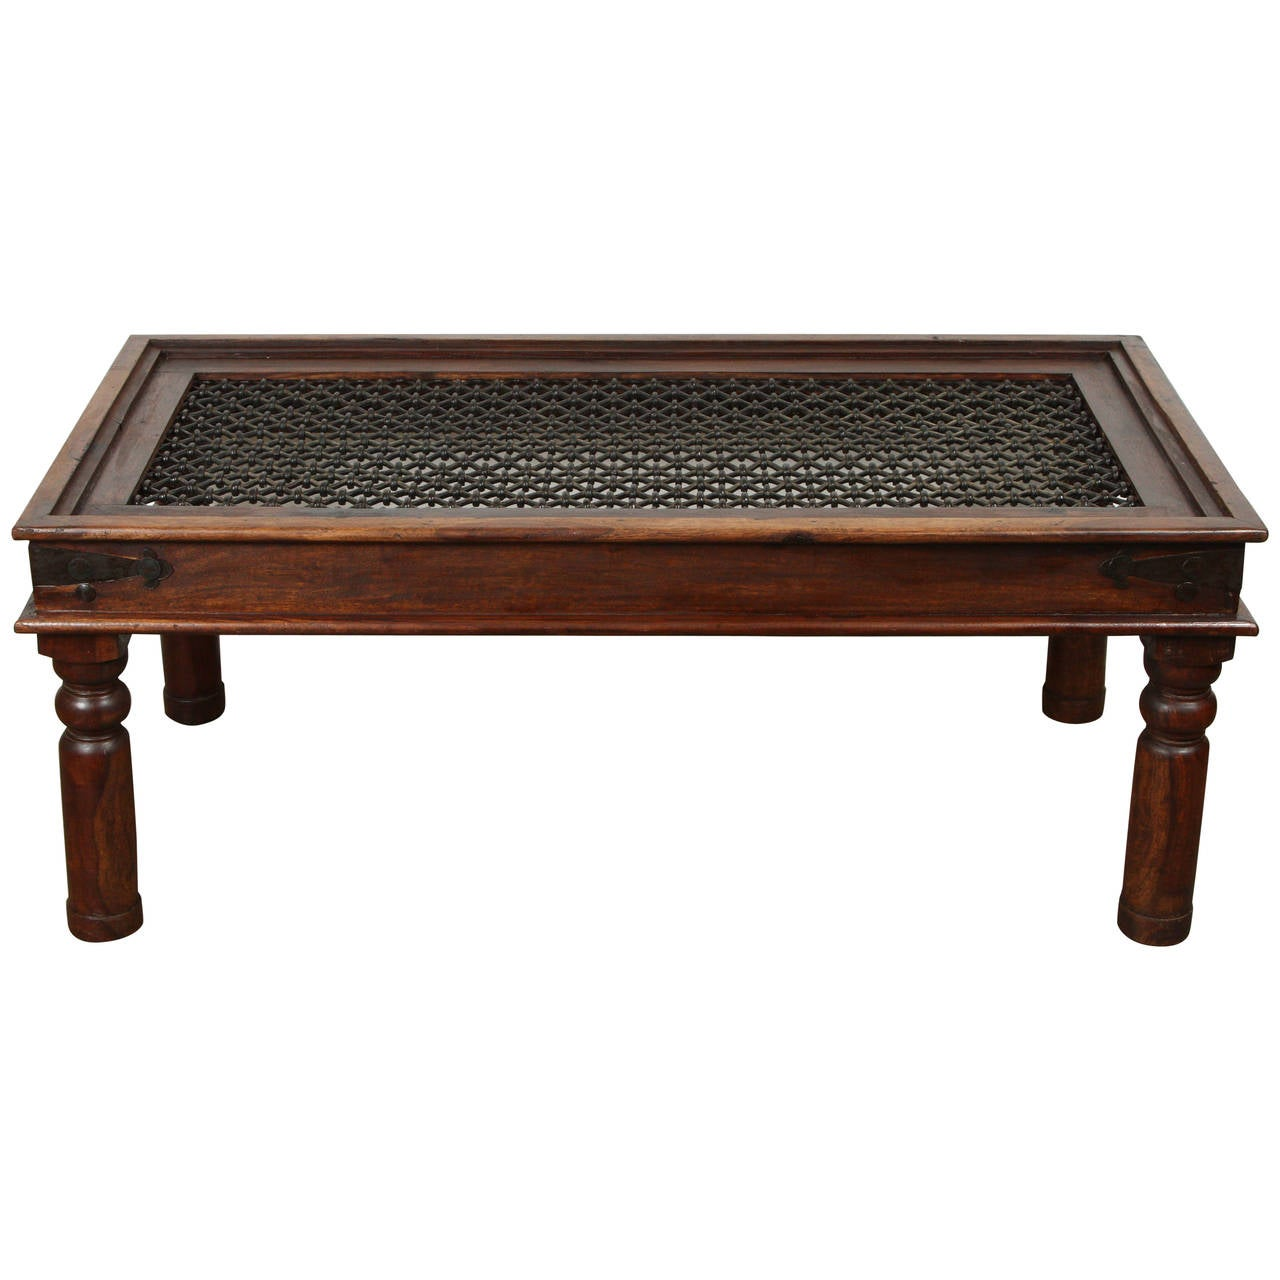 Spanish style coffee table with iron at 1stdibs Vogue coffee table